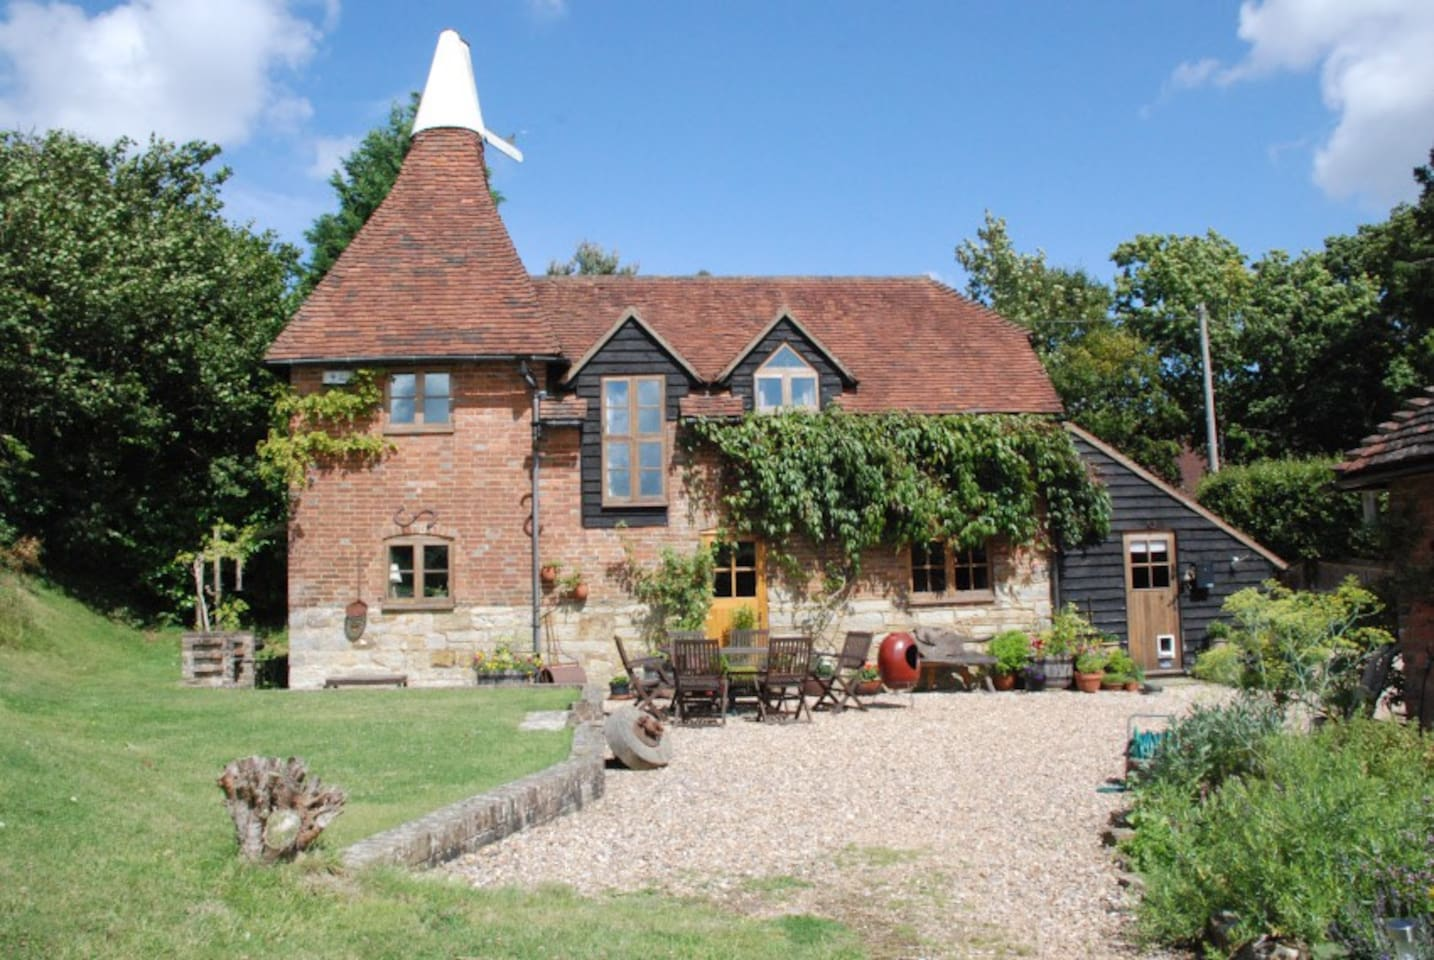 Our home is a traditional Sussex oast house, circa 1750.